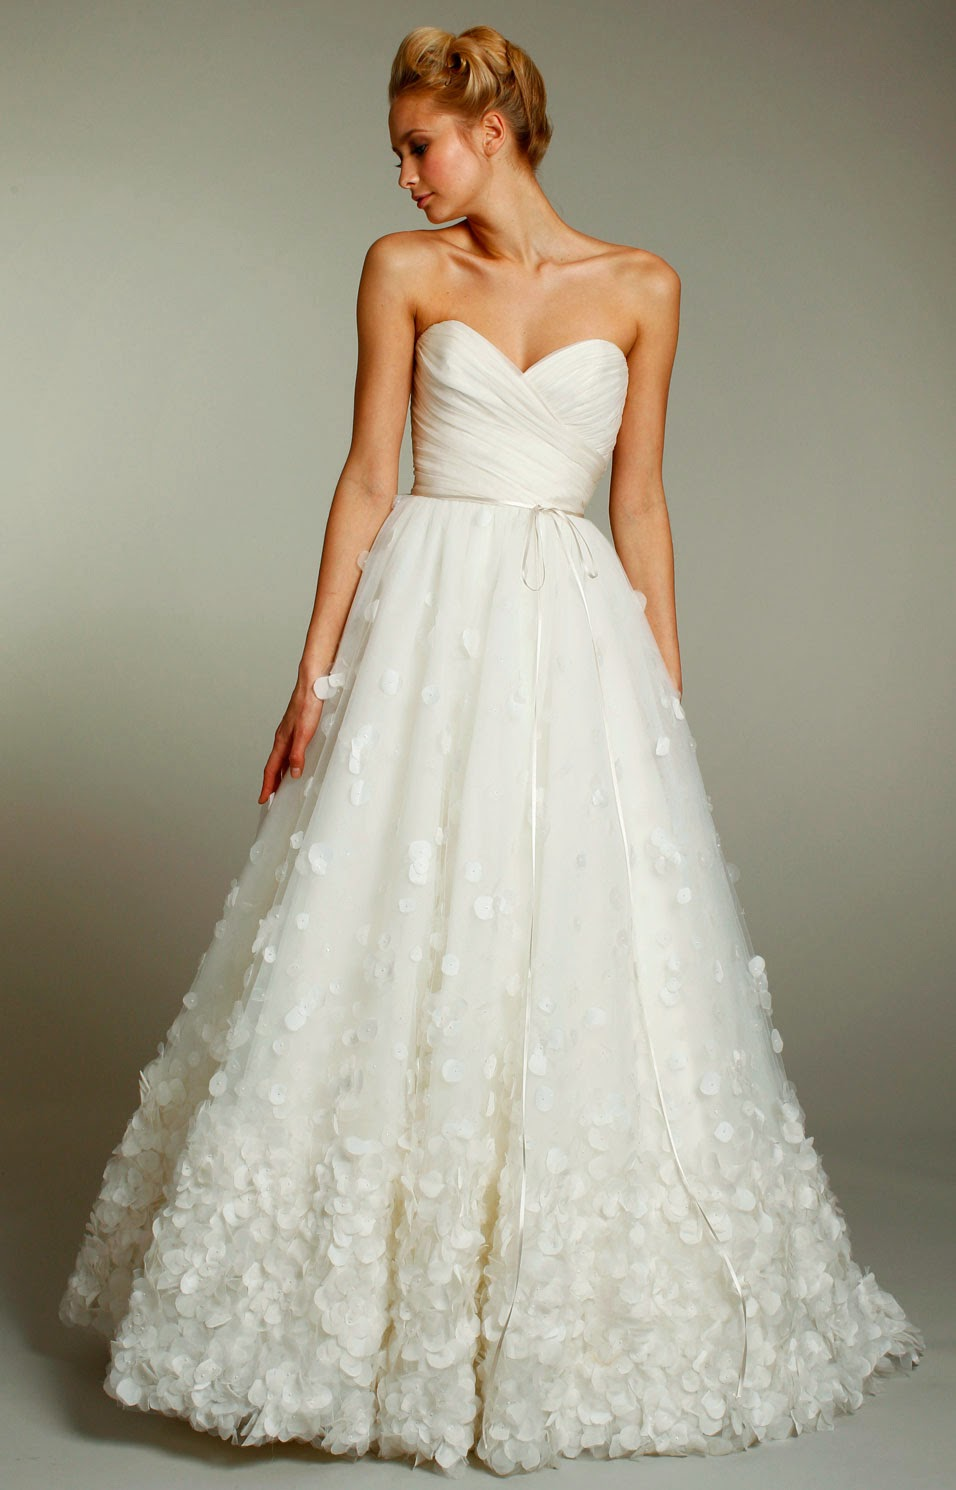 Cheap ivory wedding dresses under 100 dollars design ideas for Wedding dresses for under 100